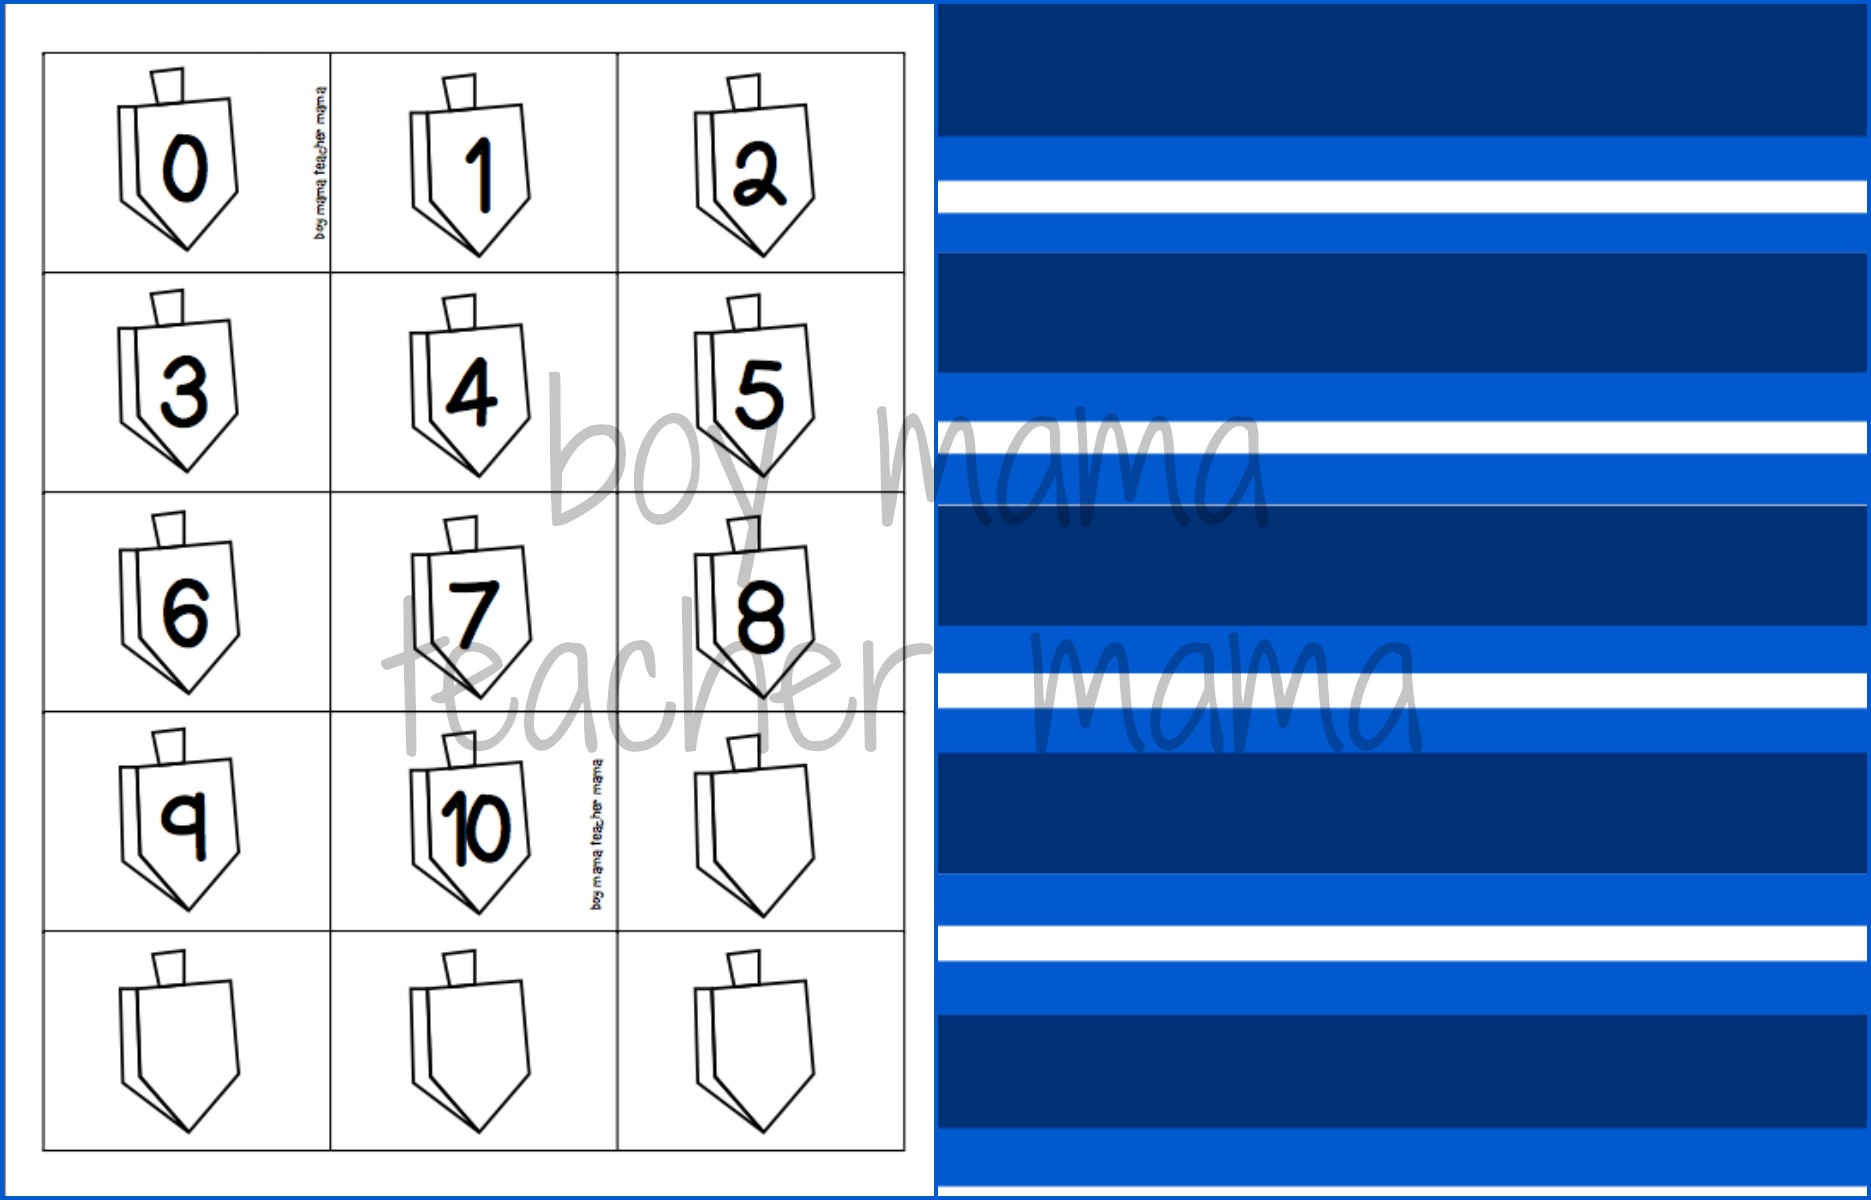 picture about Dreidel Rules Printable titled Printable Dreidel Template